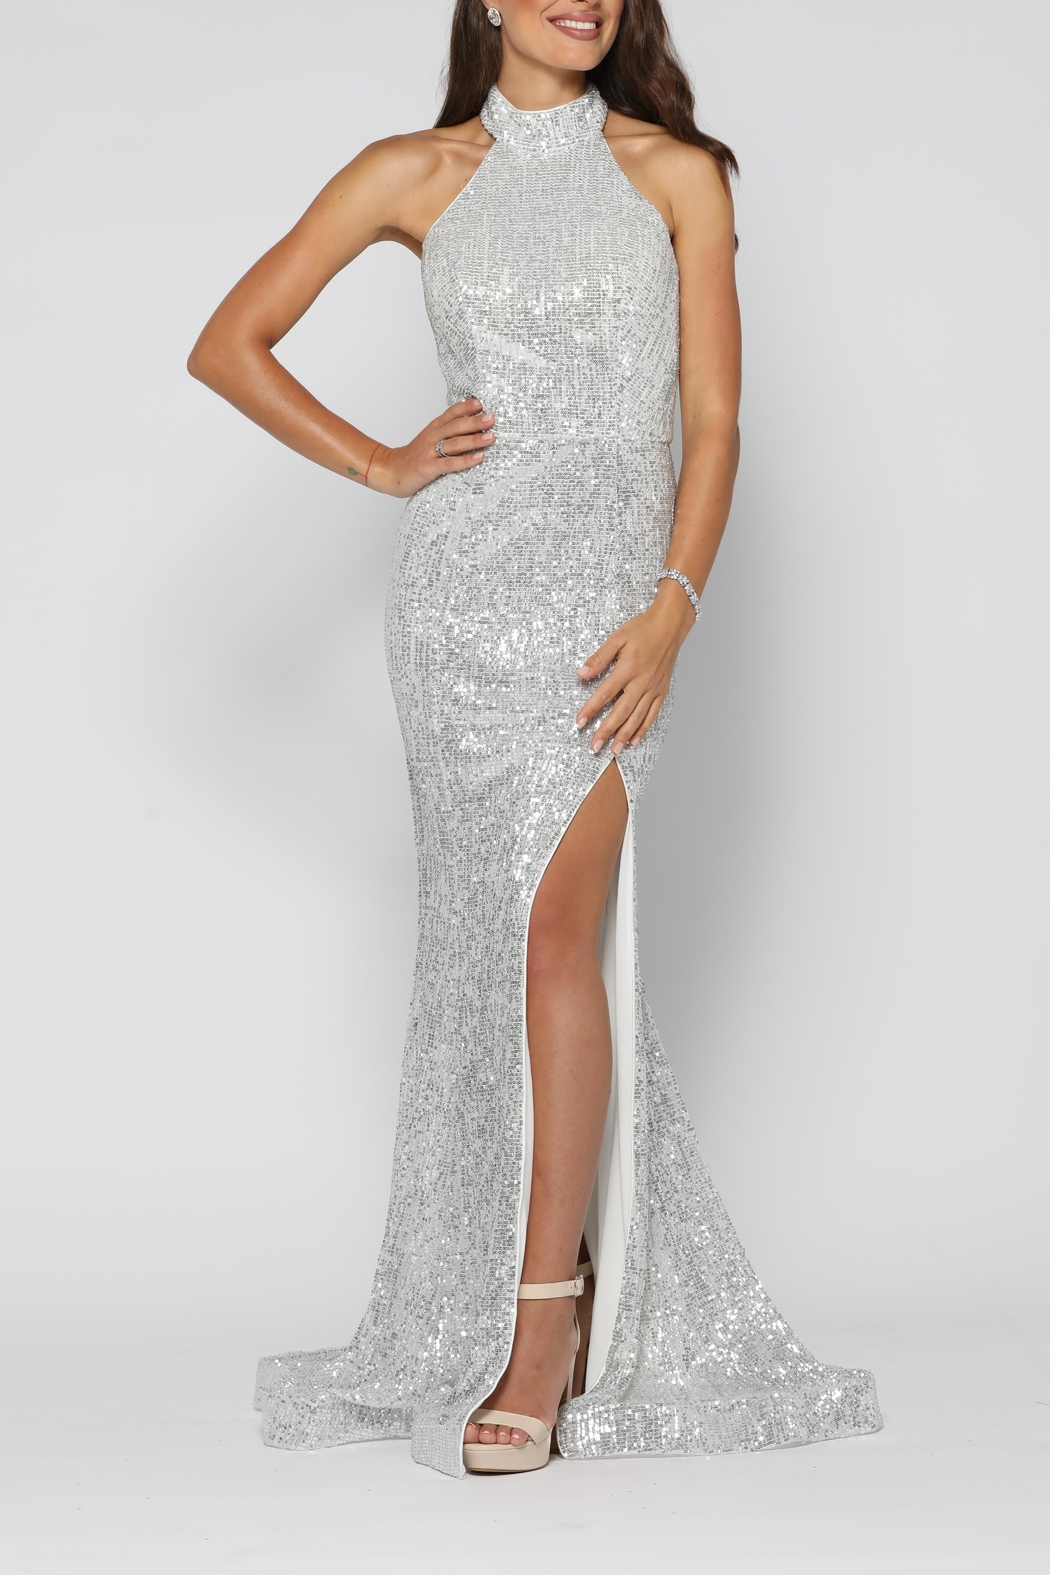 YSS the Label Valerie Gown Silver - Front Full Image